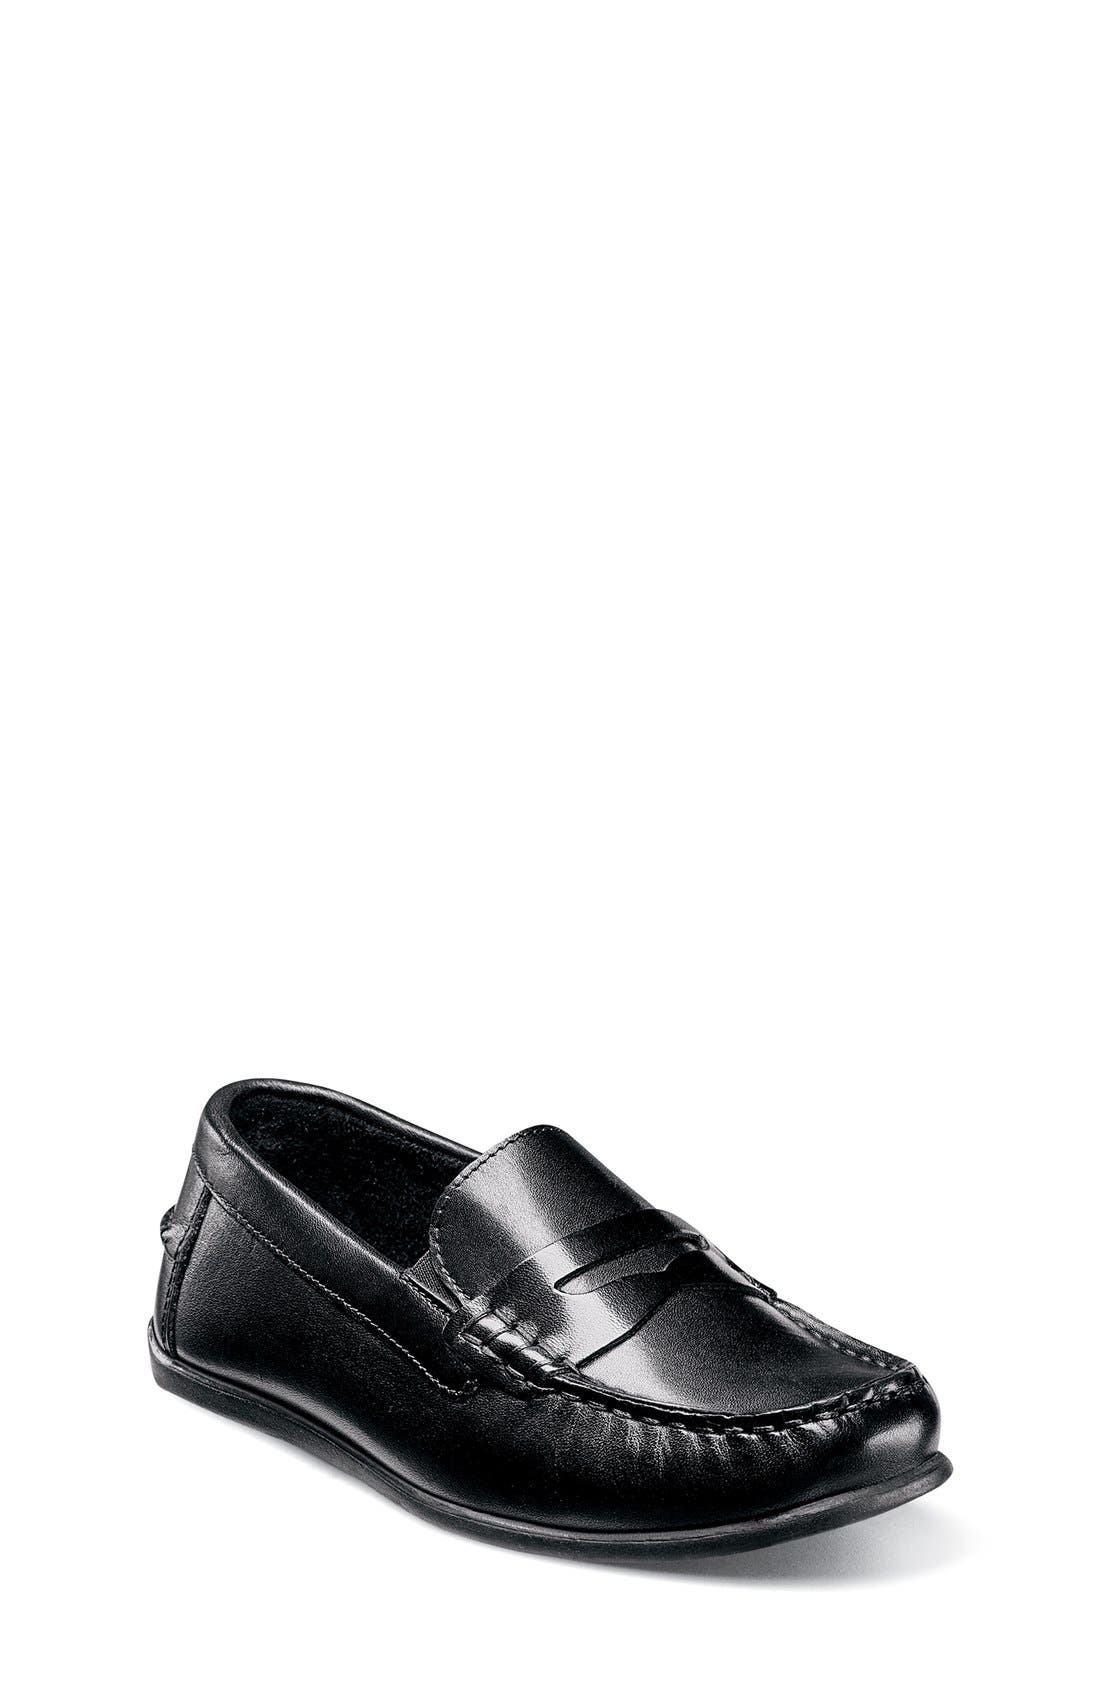 Florsheim 'Jasper - Driver Jr.' Loafer (Toddler, Little Kid & Big Kid)